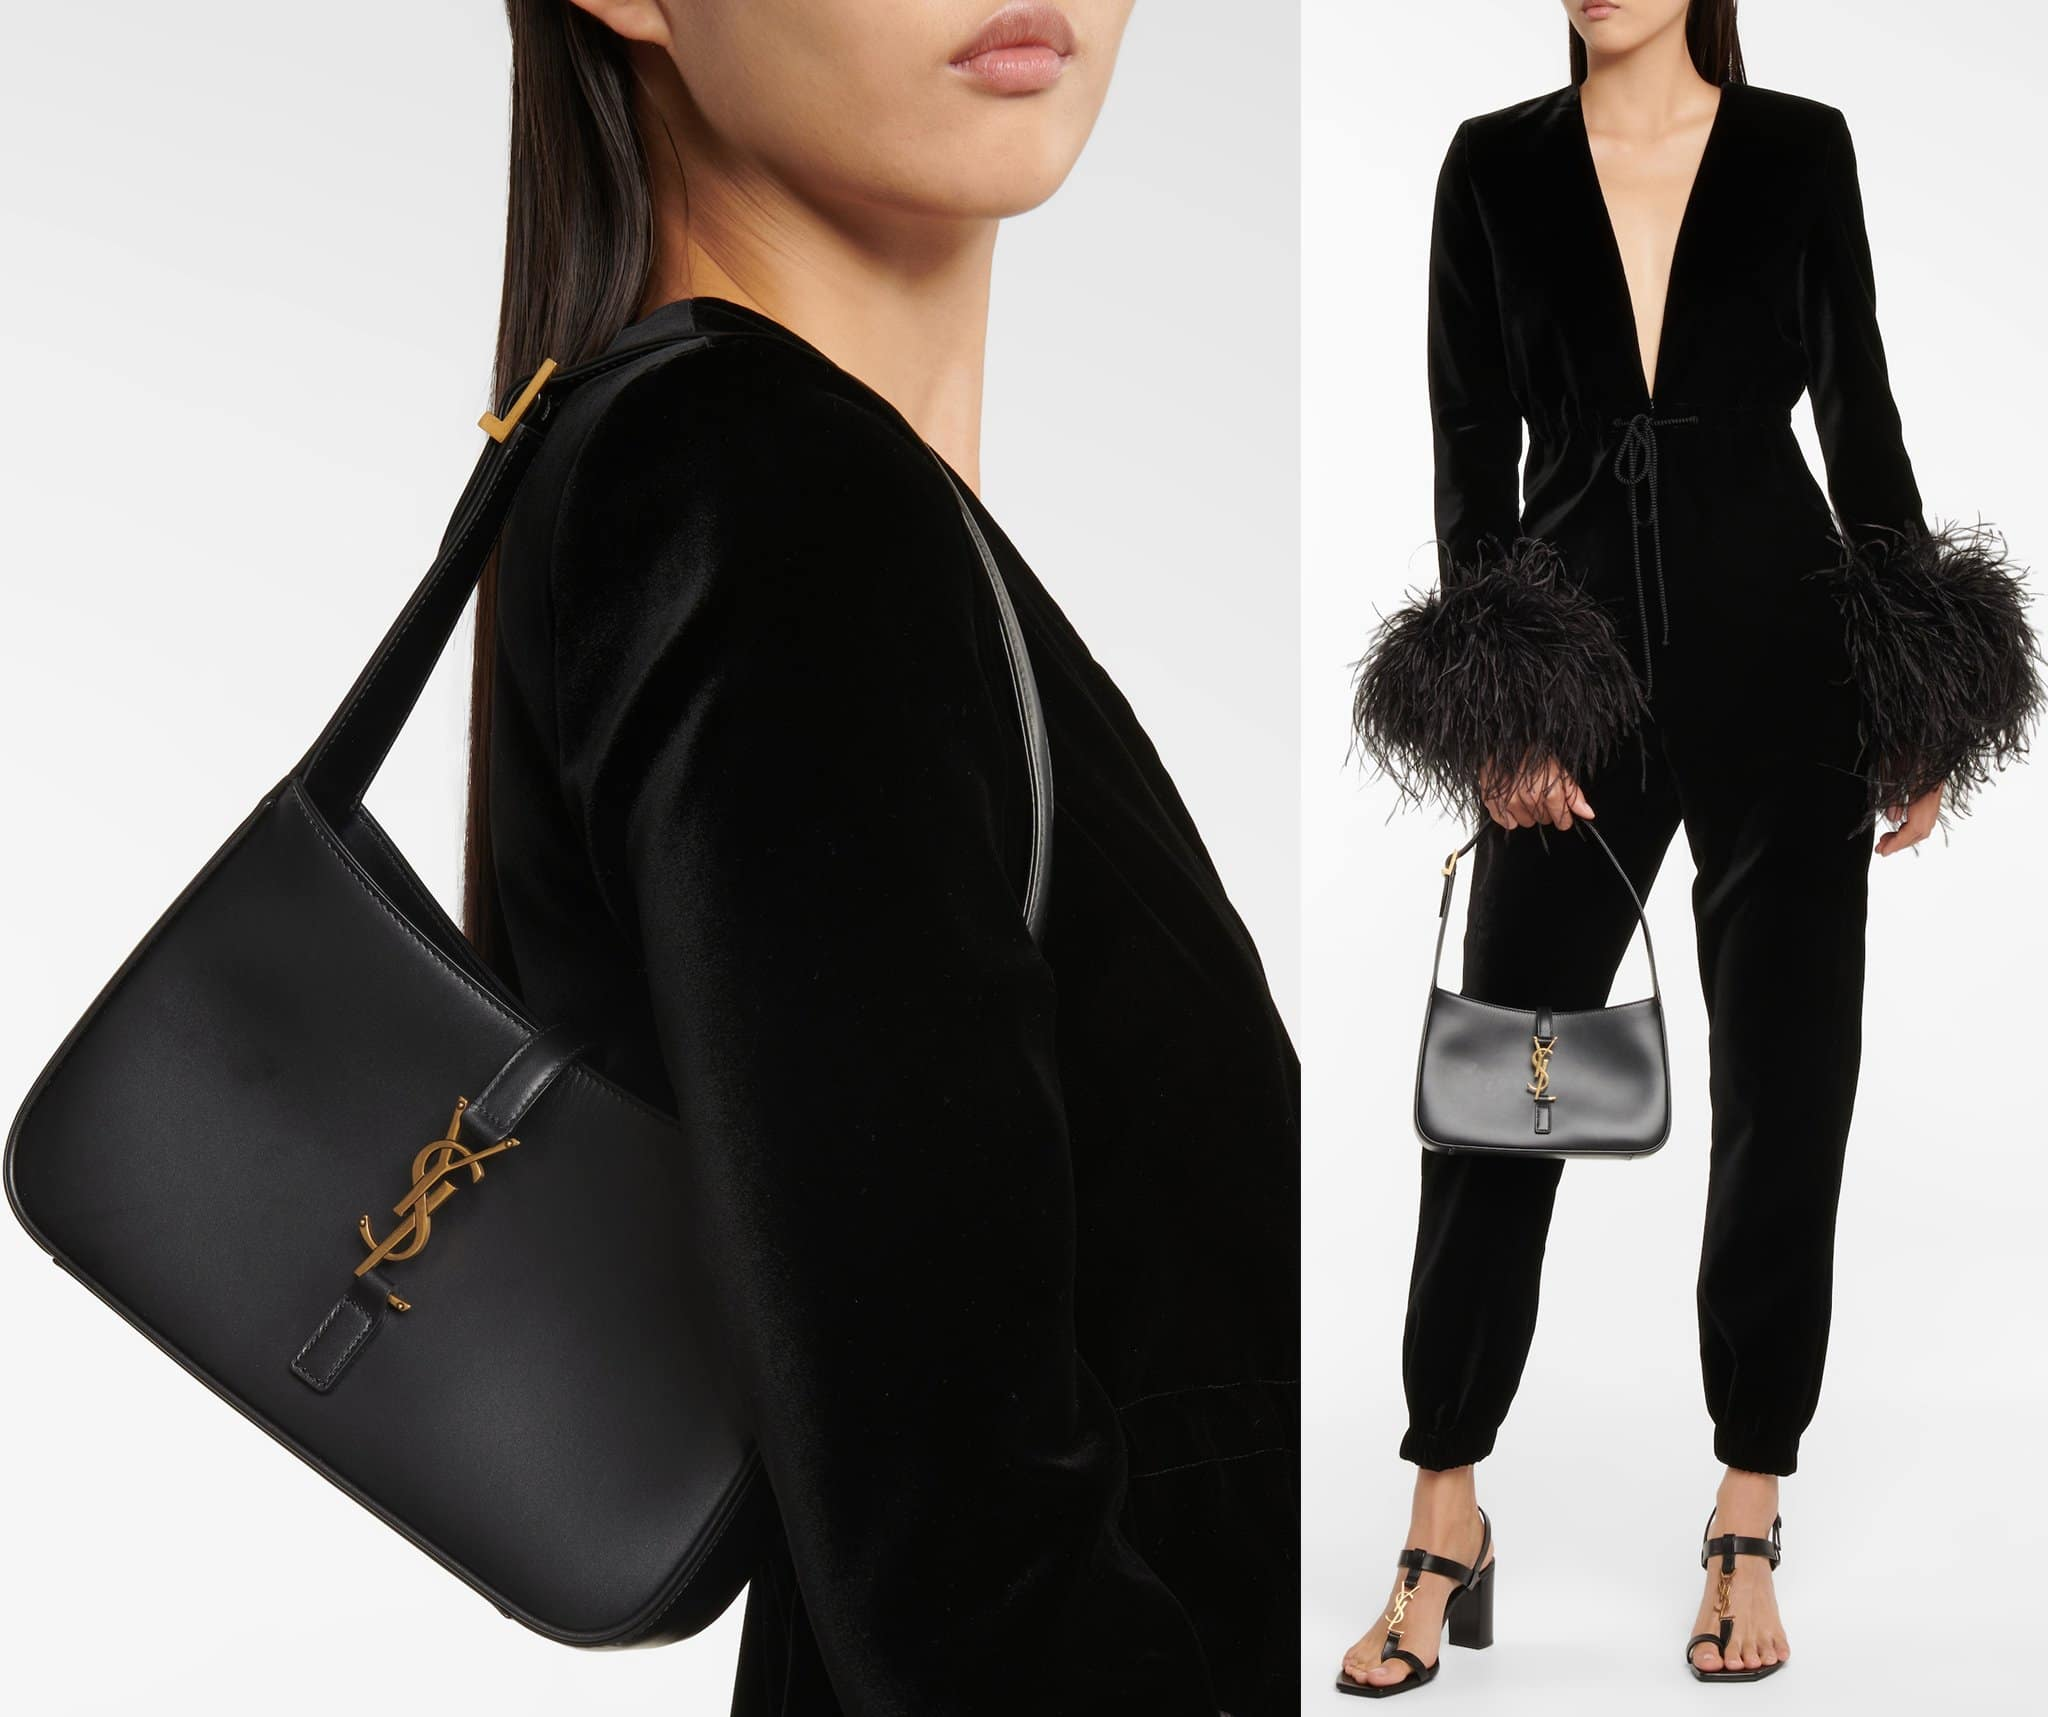 Saint Laurent offers the Le 5 à 7 bag for all your desk-to-dinner and other social activities